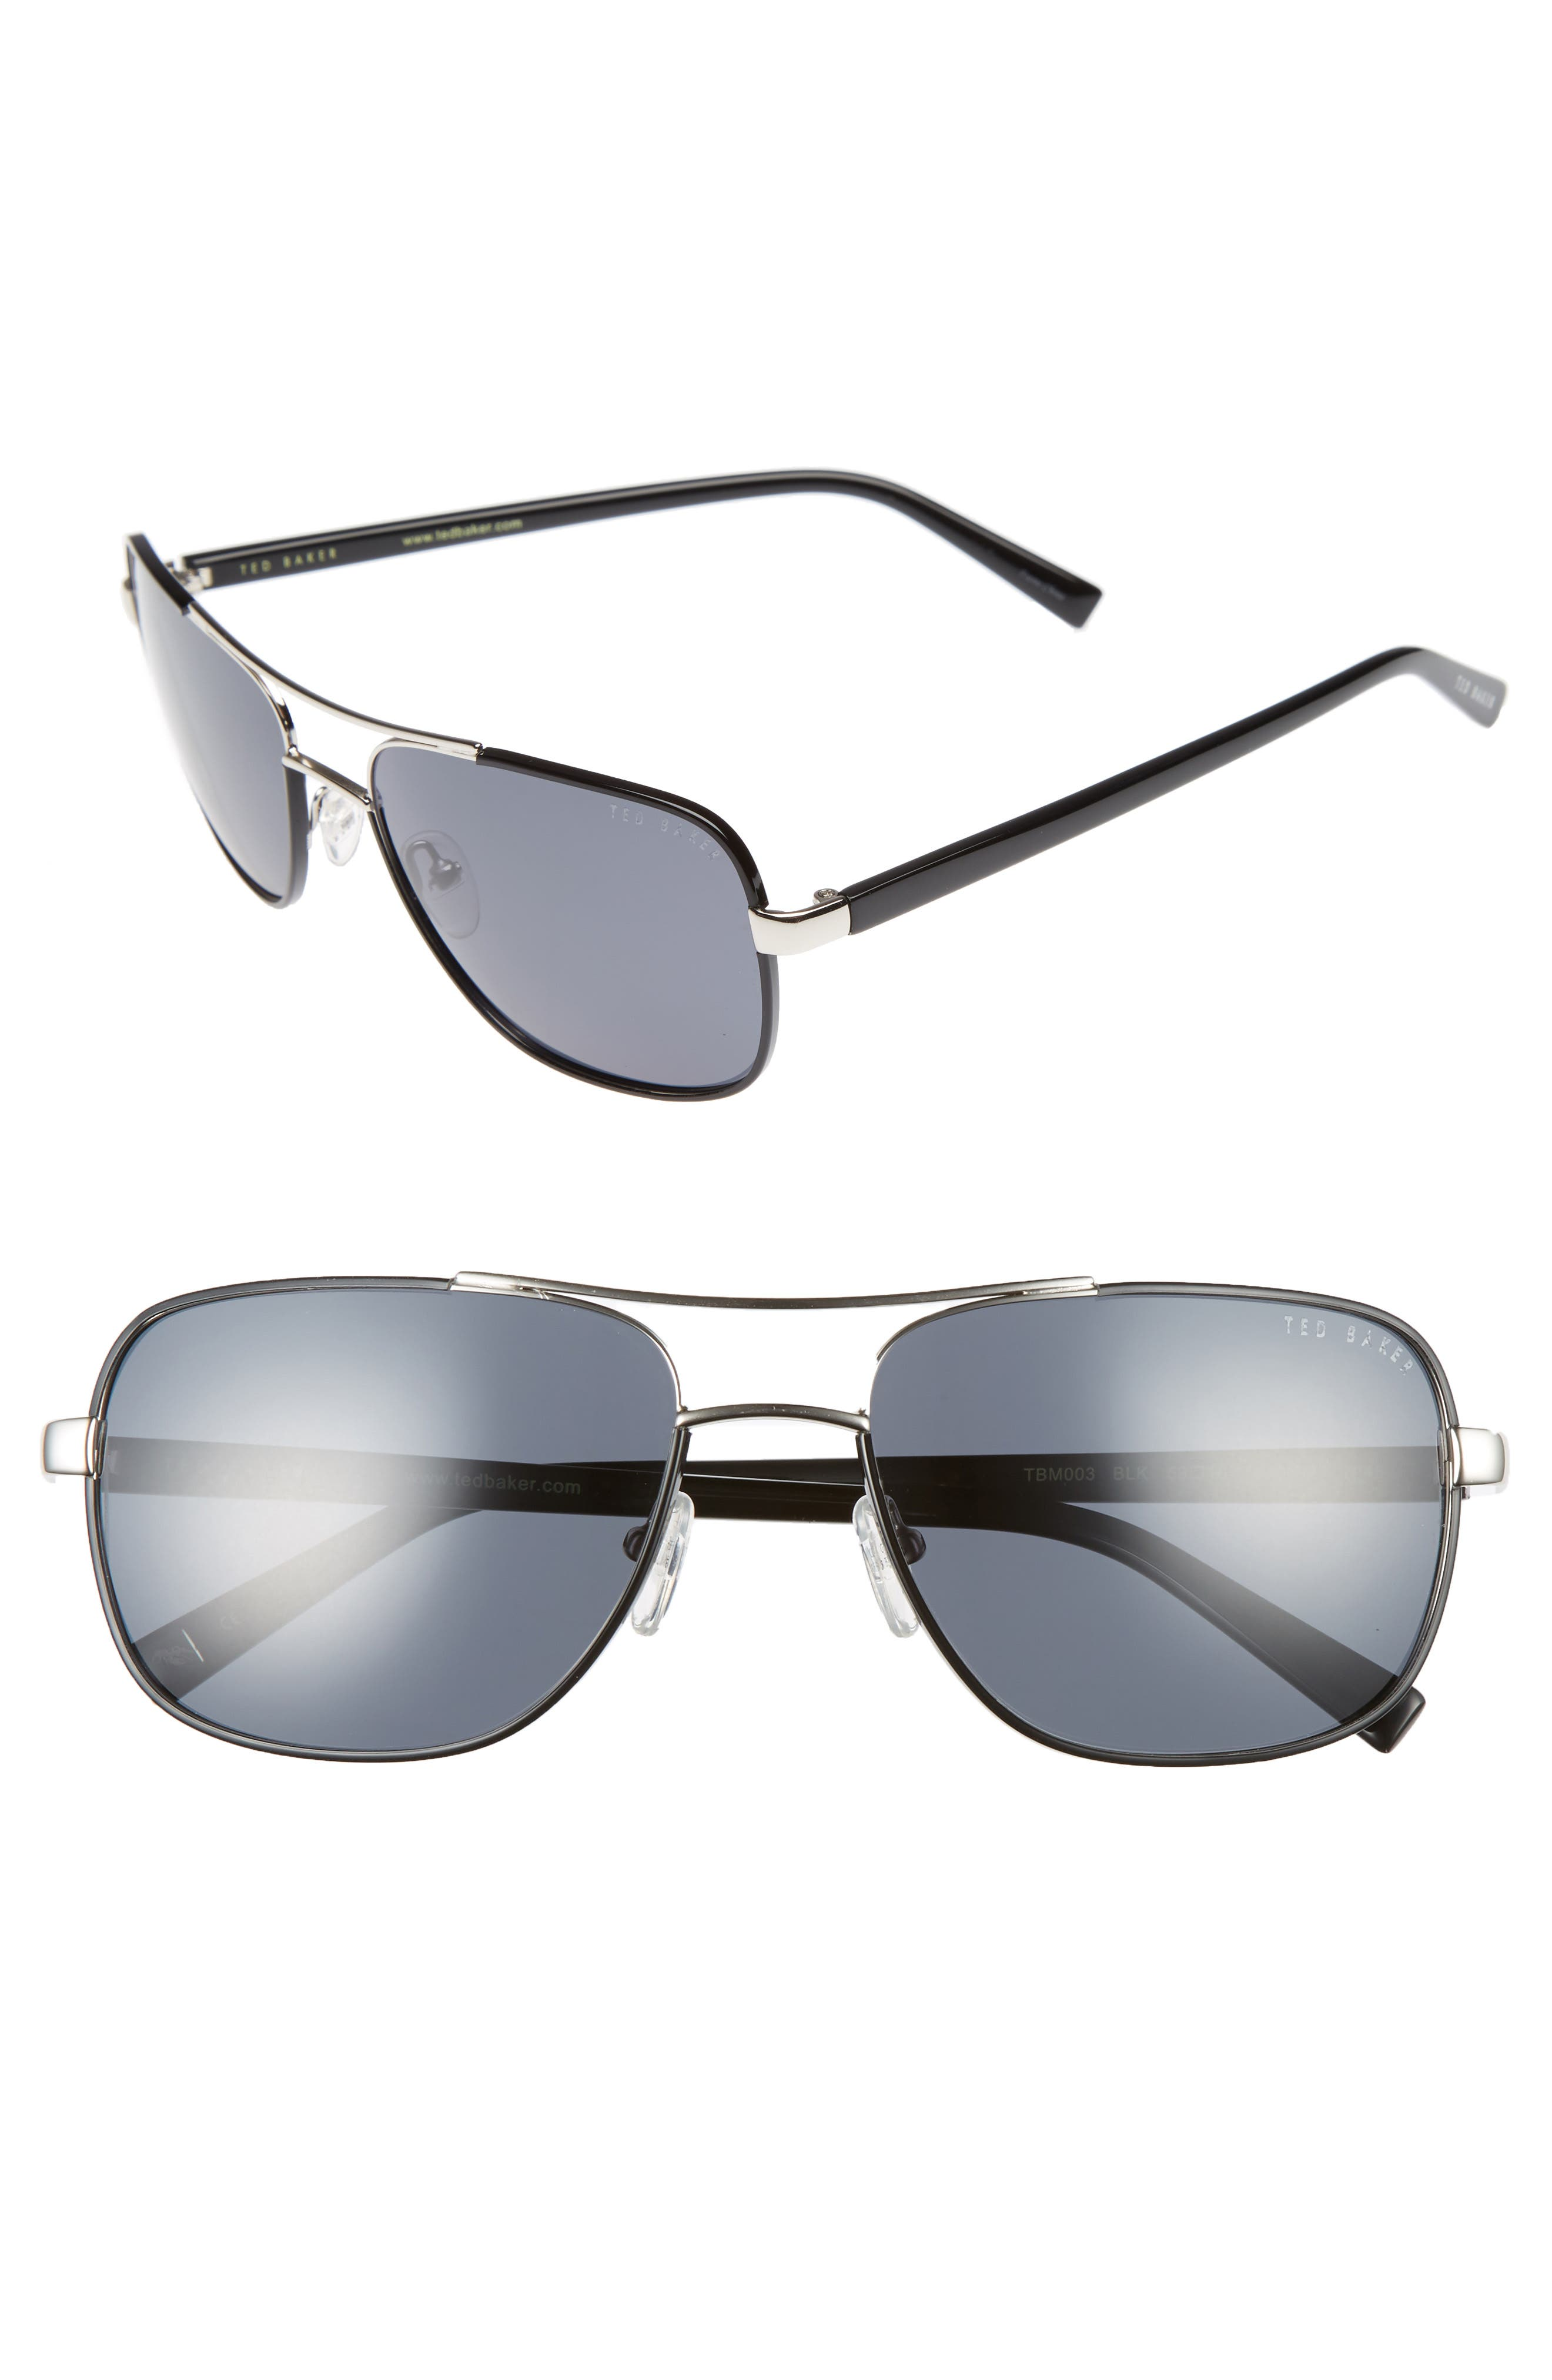 TED BAKER LONDON 59mm Polarized Navigator Sunglasses